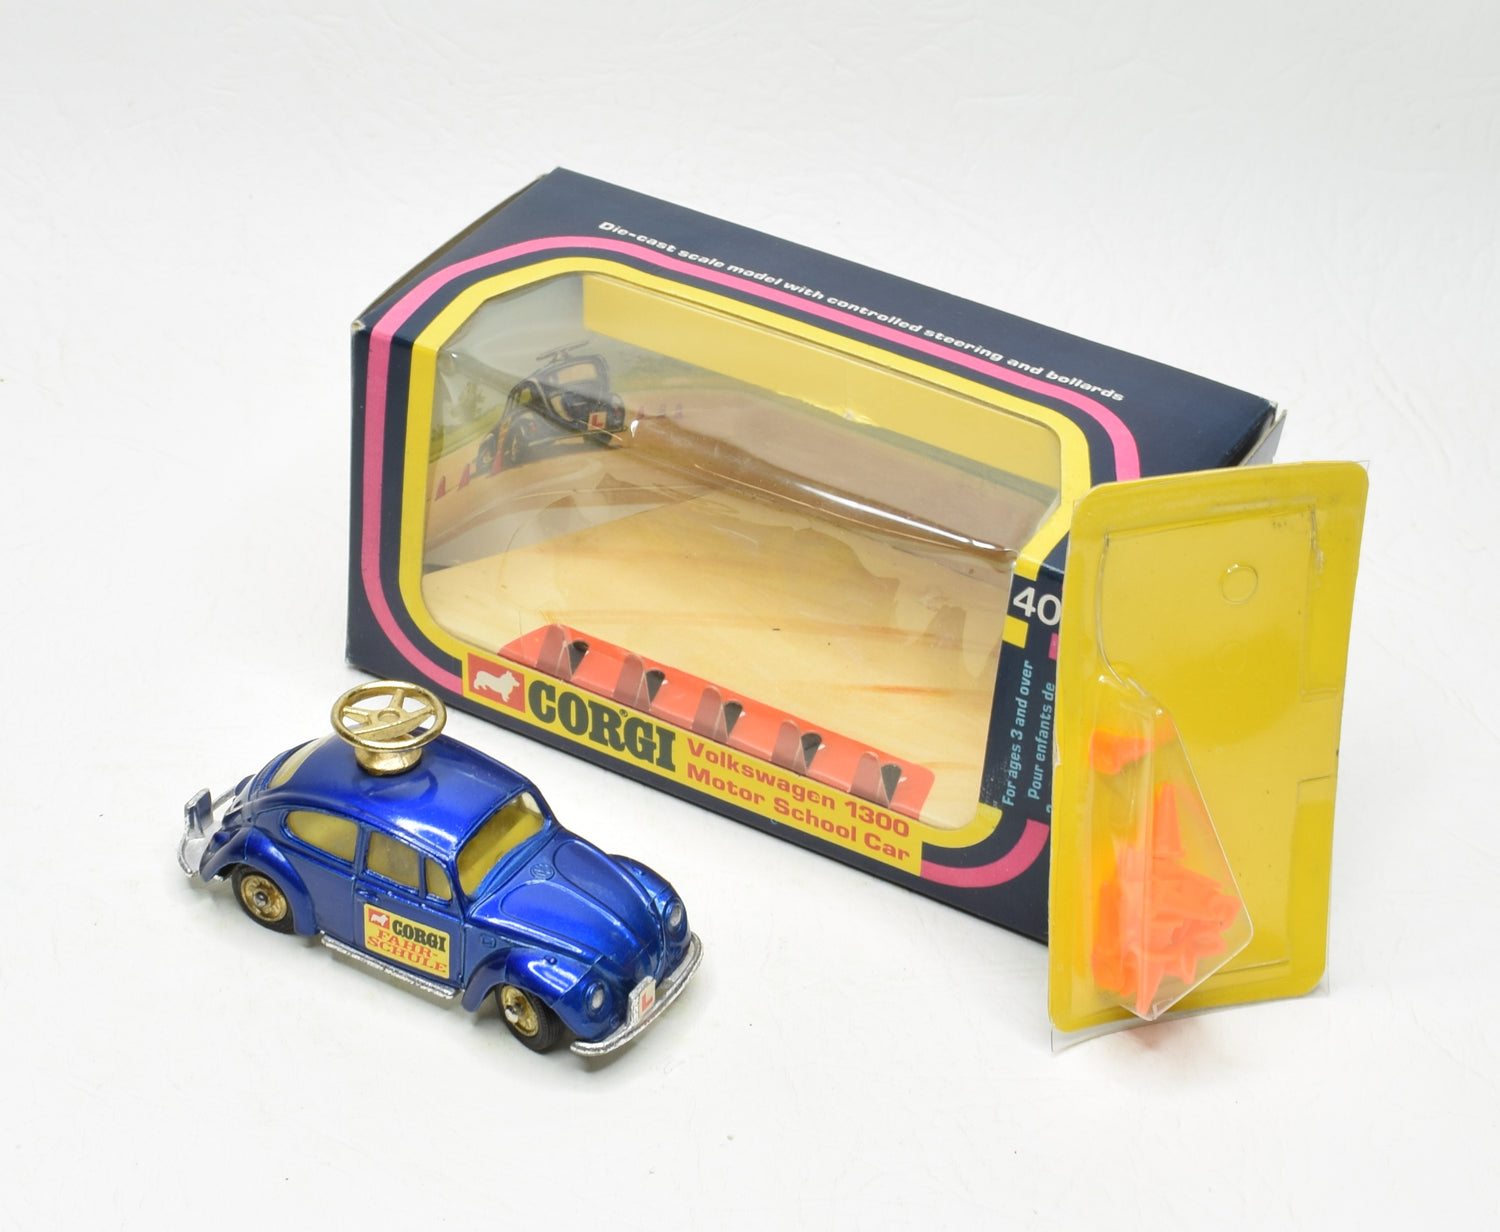 Corgi toys 401 VW Motor School 'Farhschule' Very Near Mint/Boxed The 'Wickham' Collection